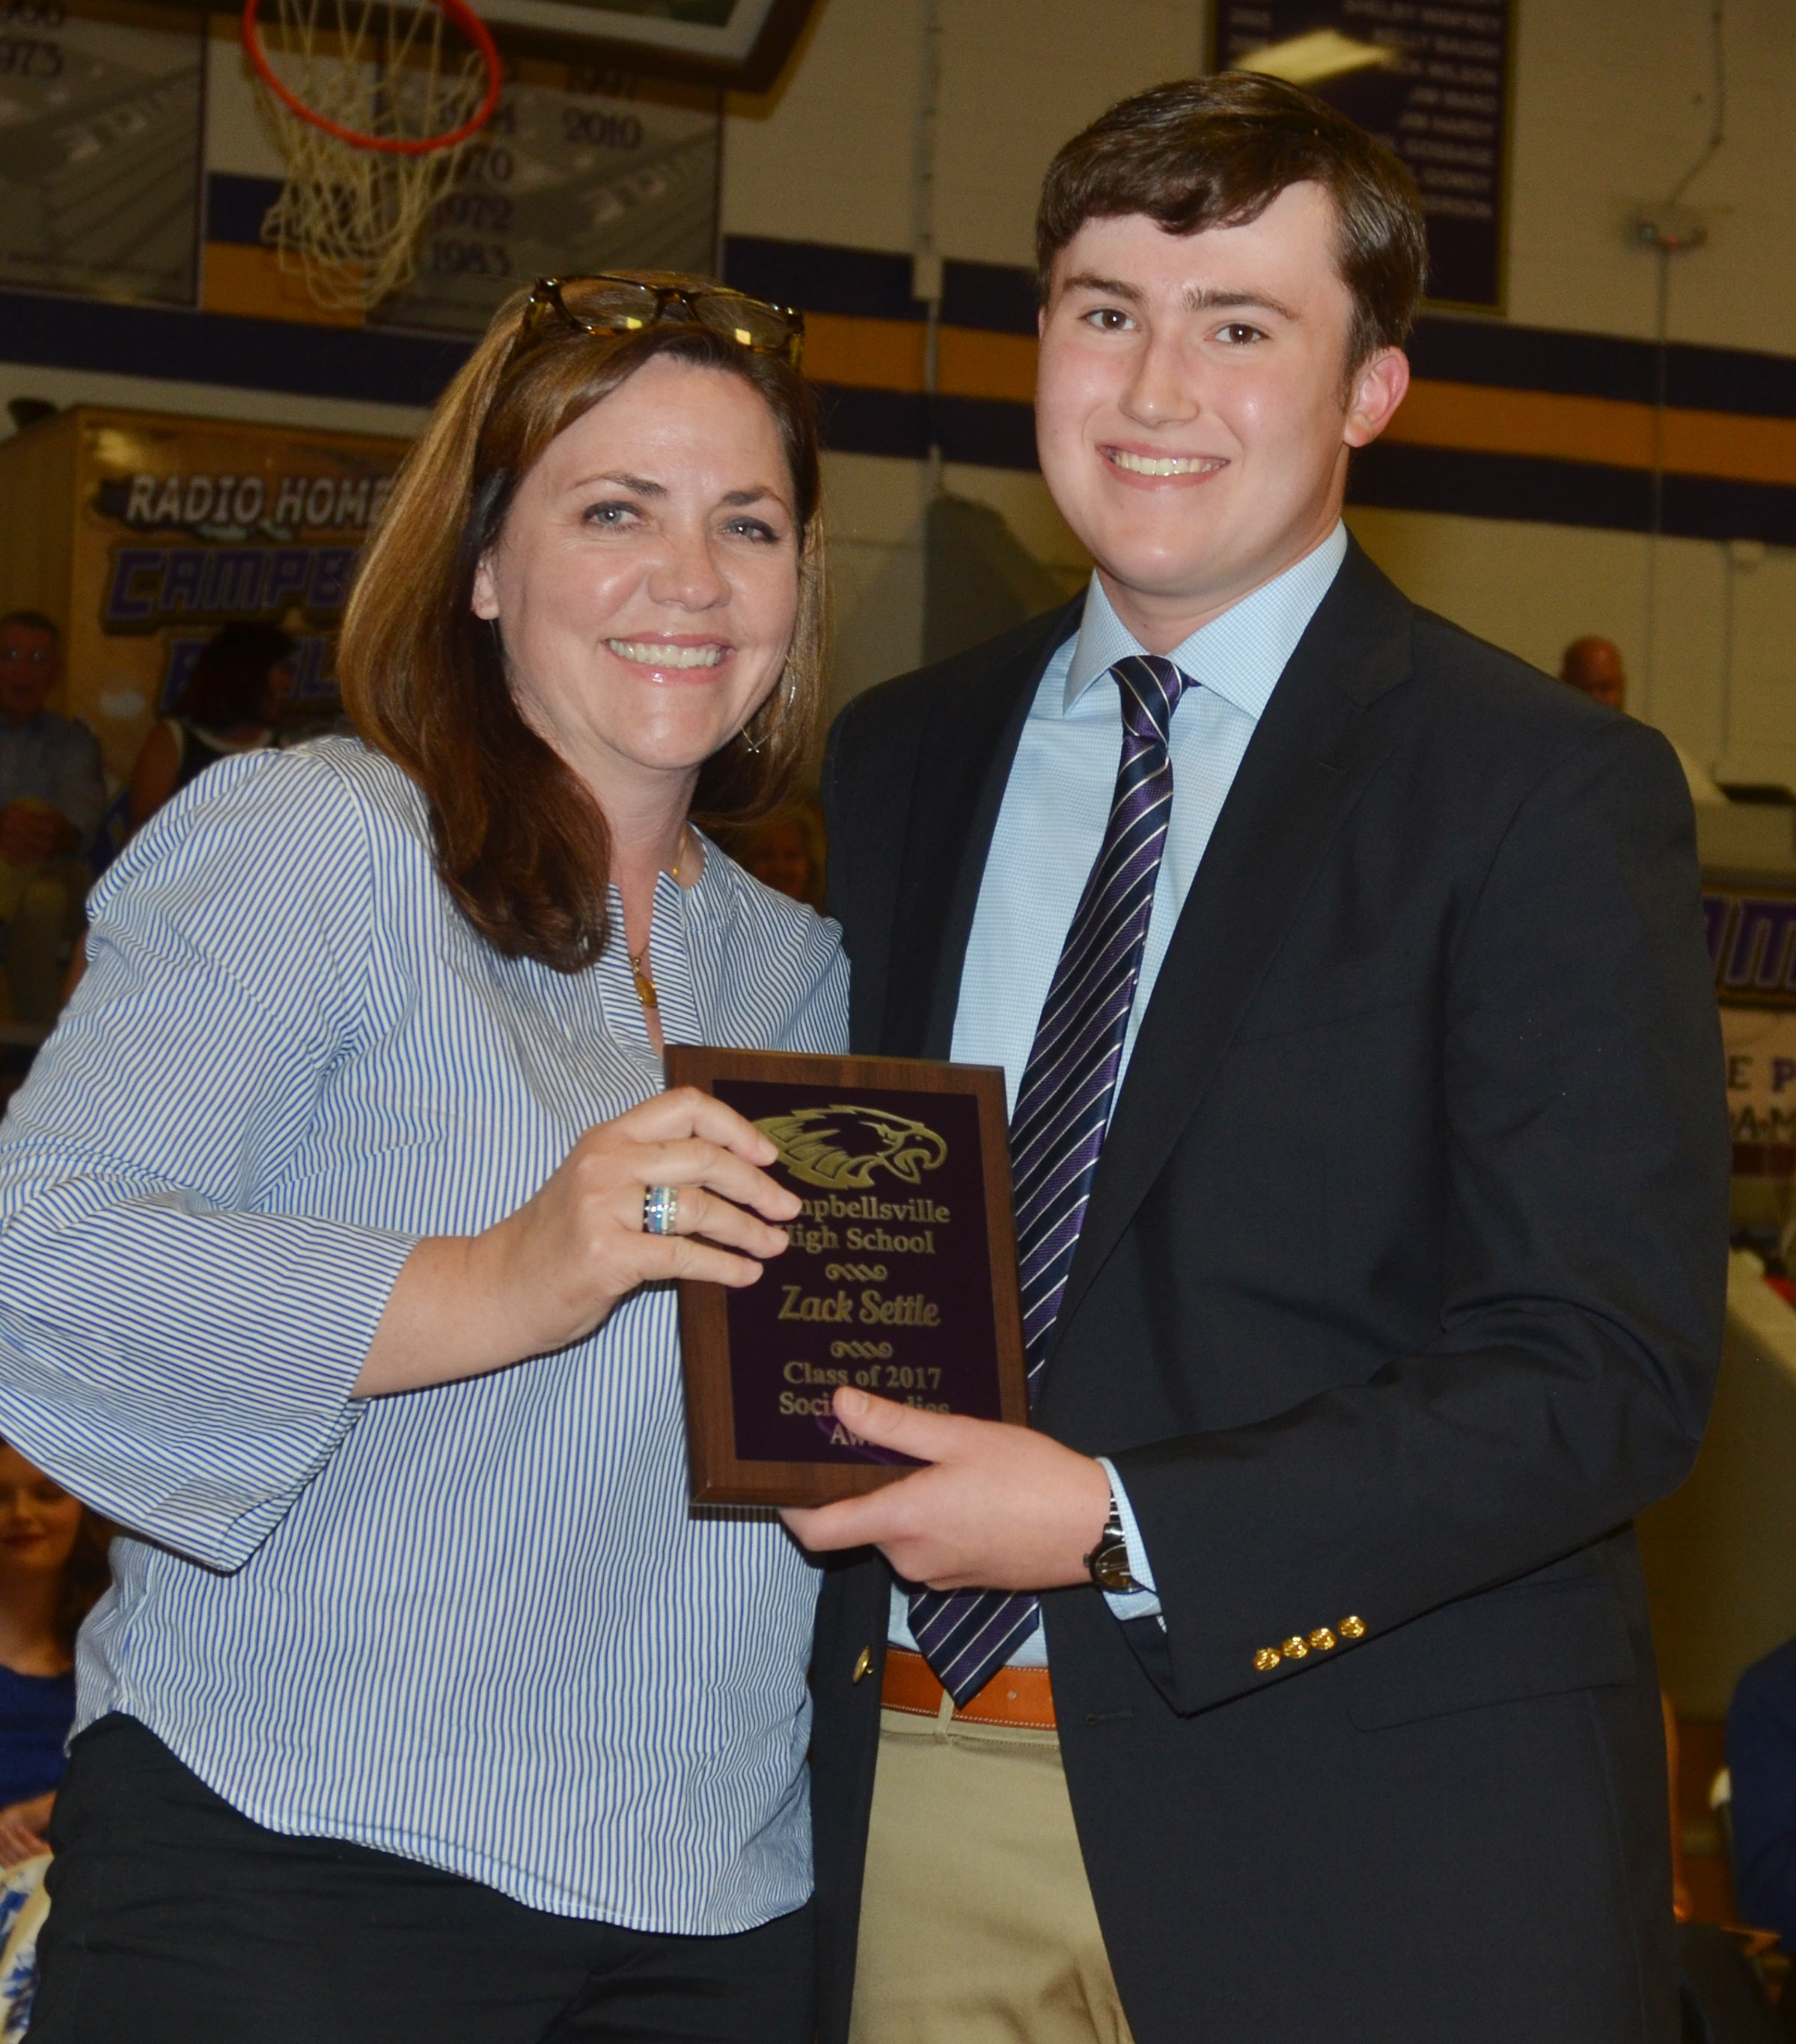 Zack Settle receives the social studies award. He is pictured with social studies teacher Susan Dabney.